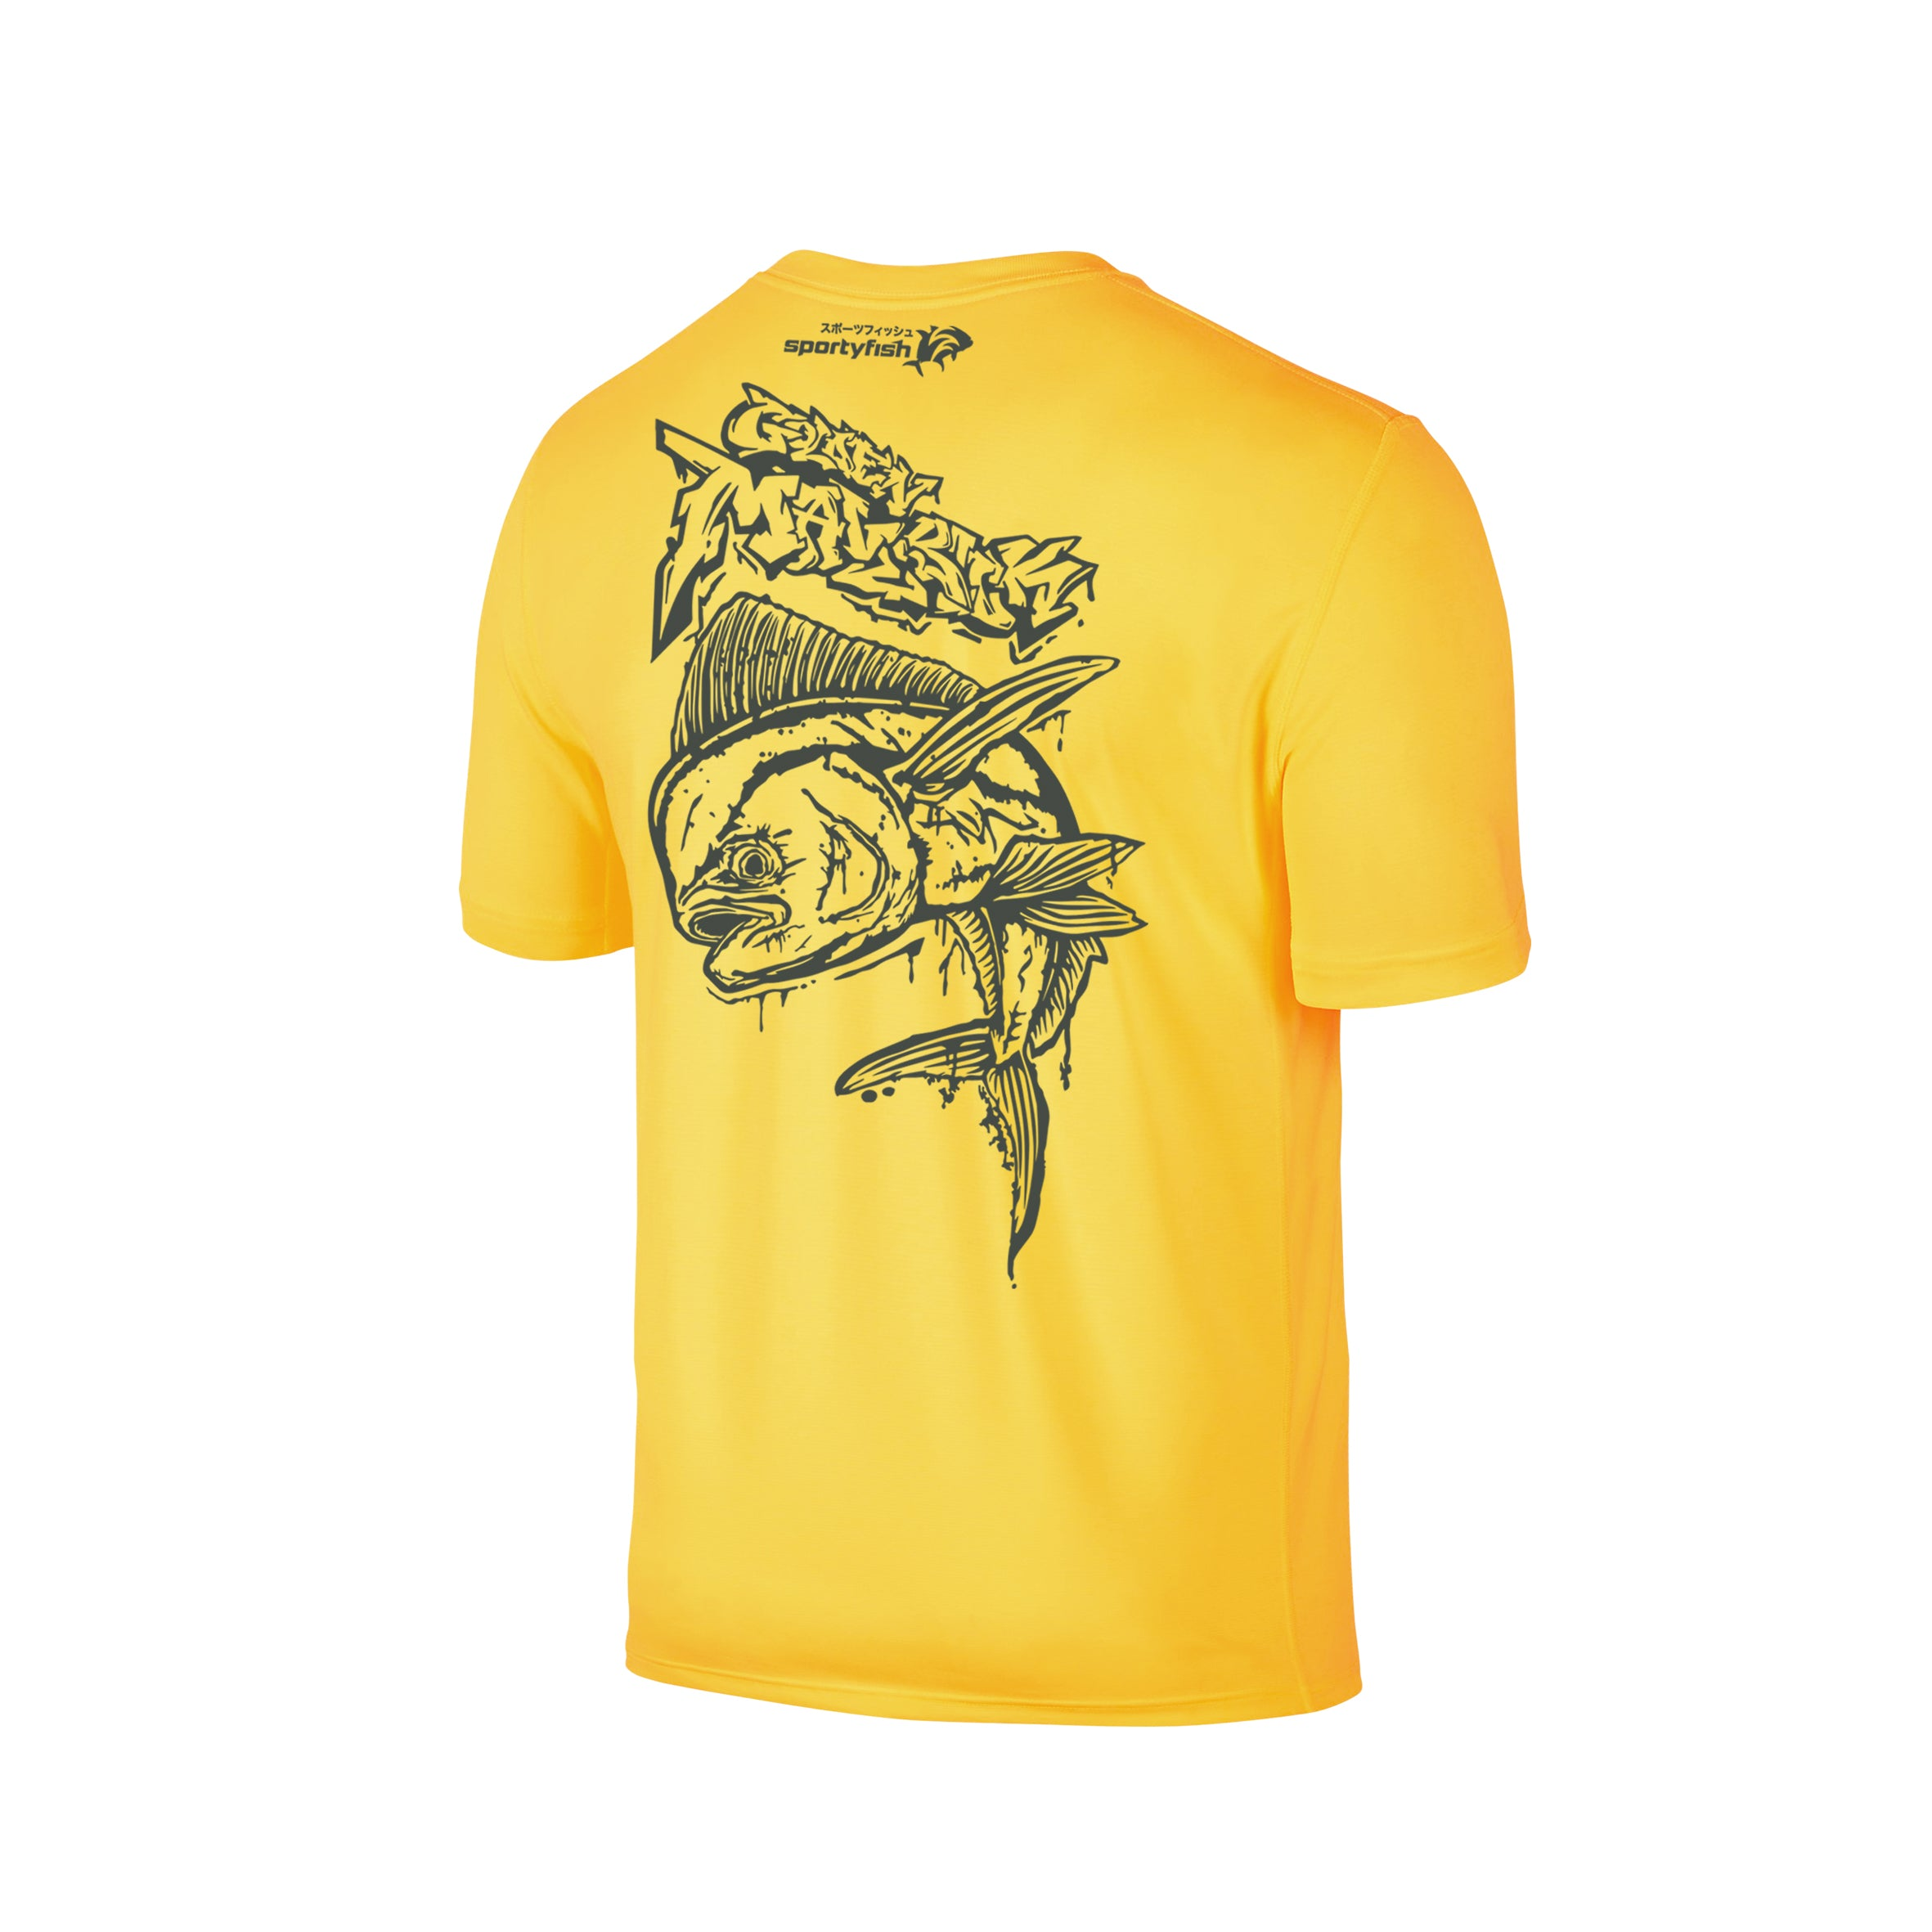 Wildstyle Graffiti Series Yellow T-shirt(back view)Tungsten: Mahi-mahi